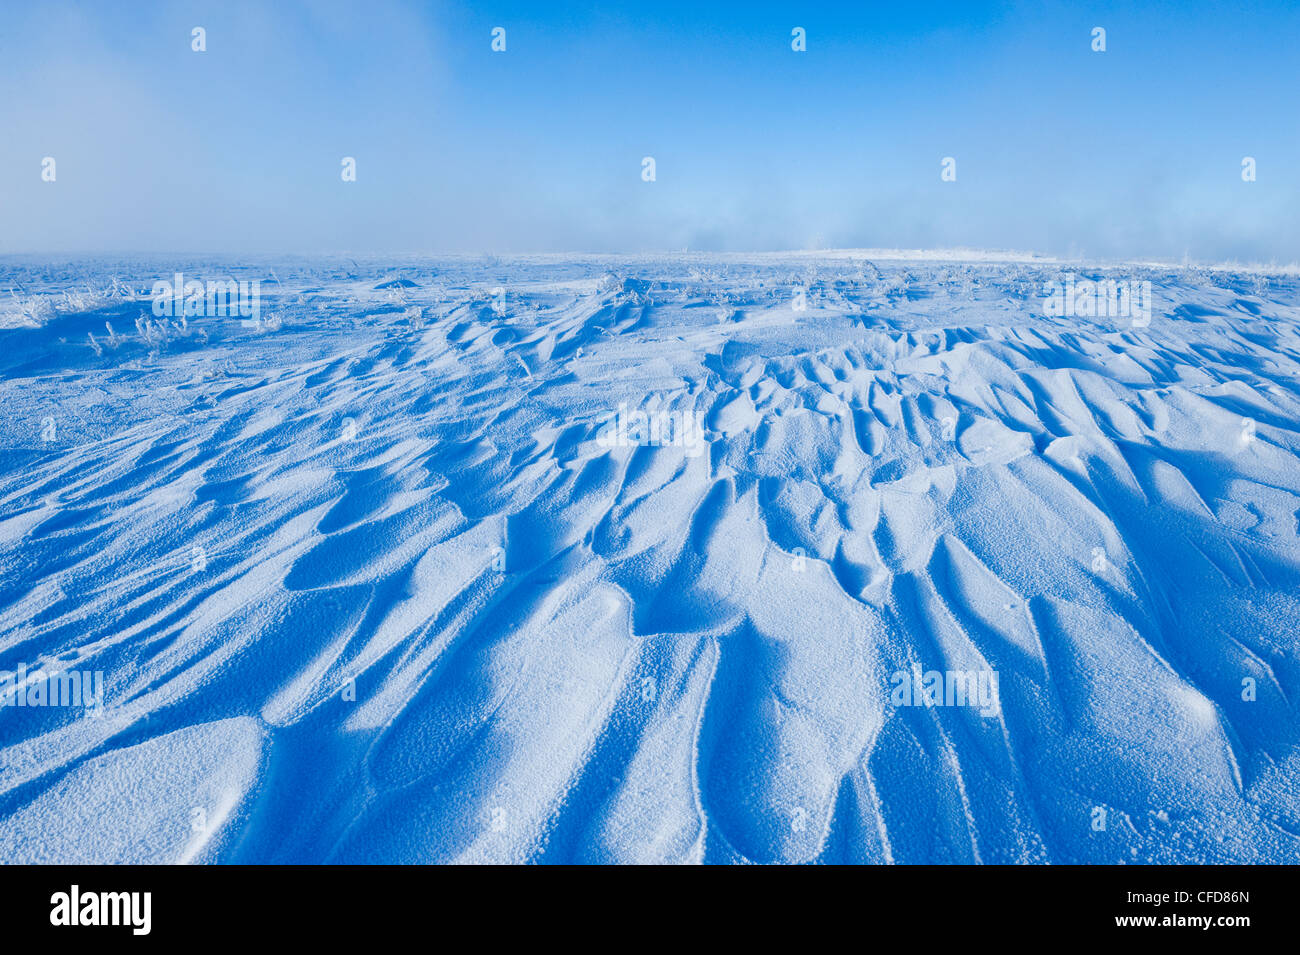 Snow drifts caused by wind, Southern Saskatchewan, Canada - Stock Image